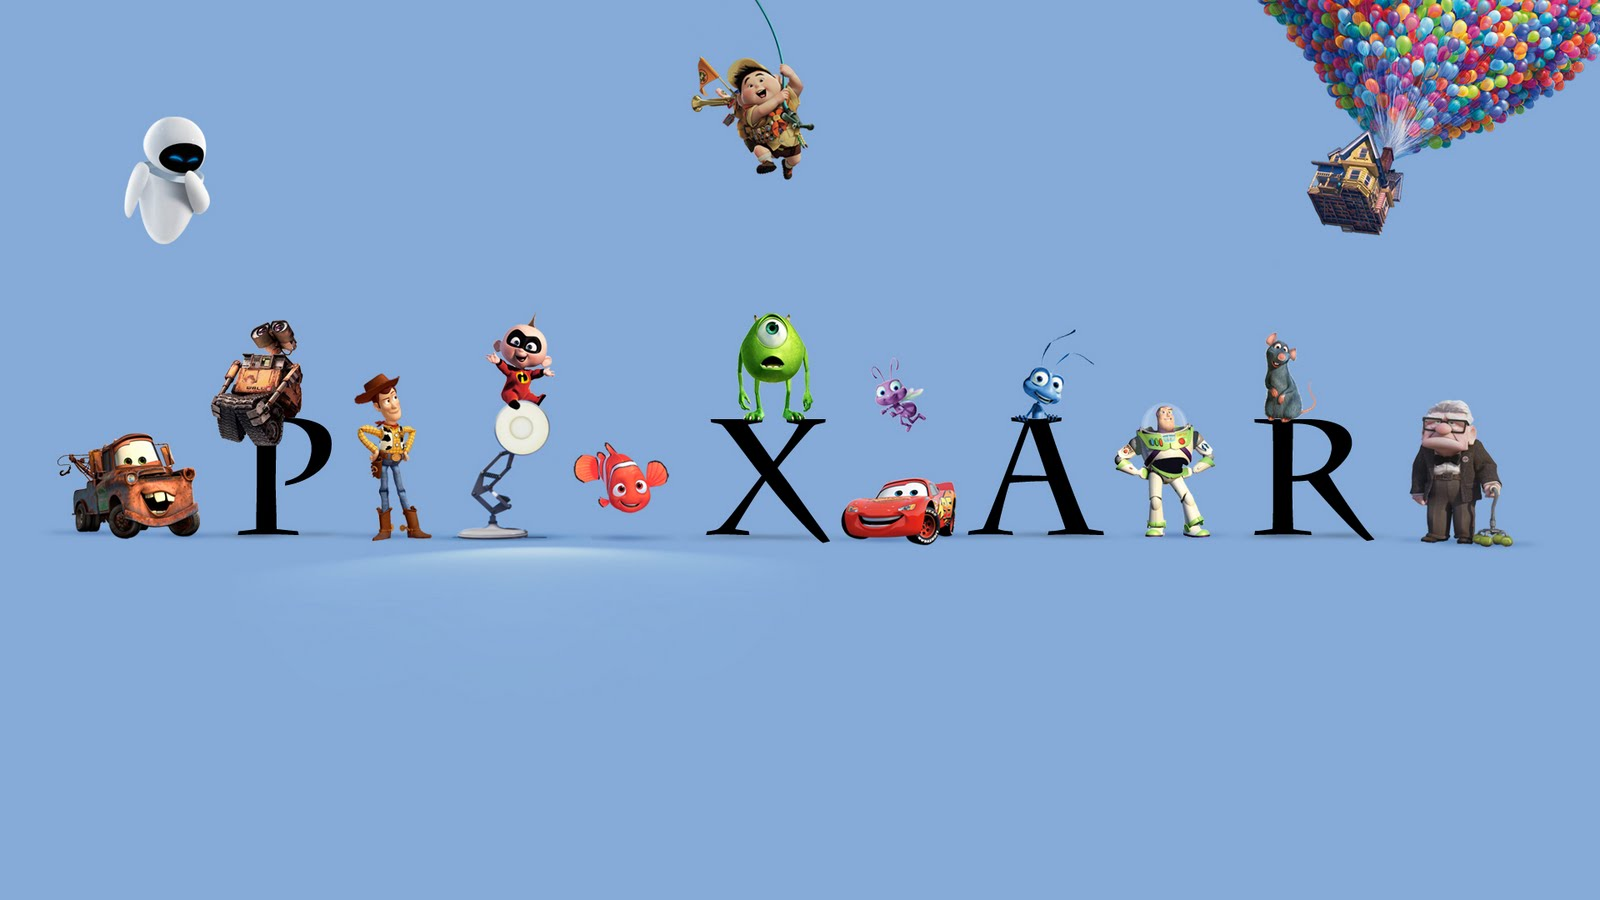 Up Wallpaper Pixar  Free Download Wallpaper  DaWallpaperz